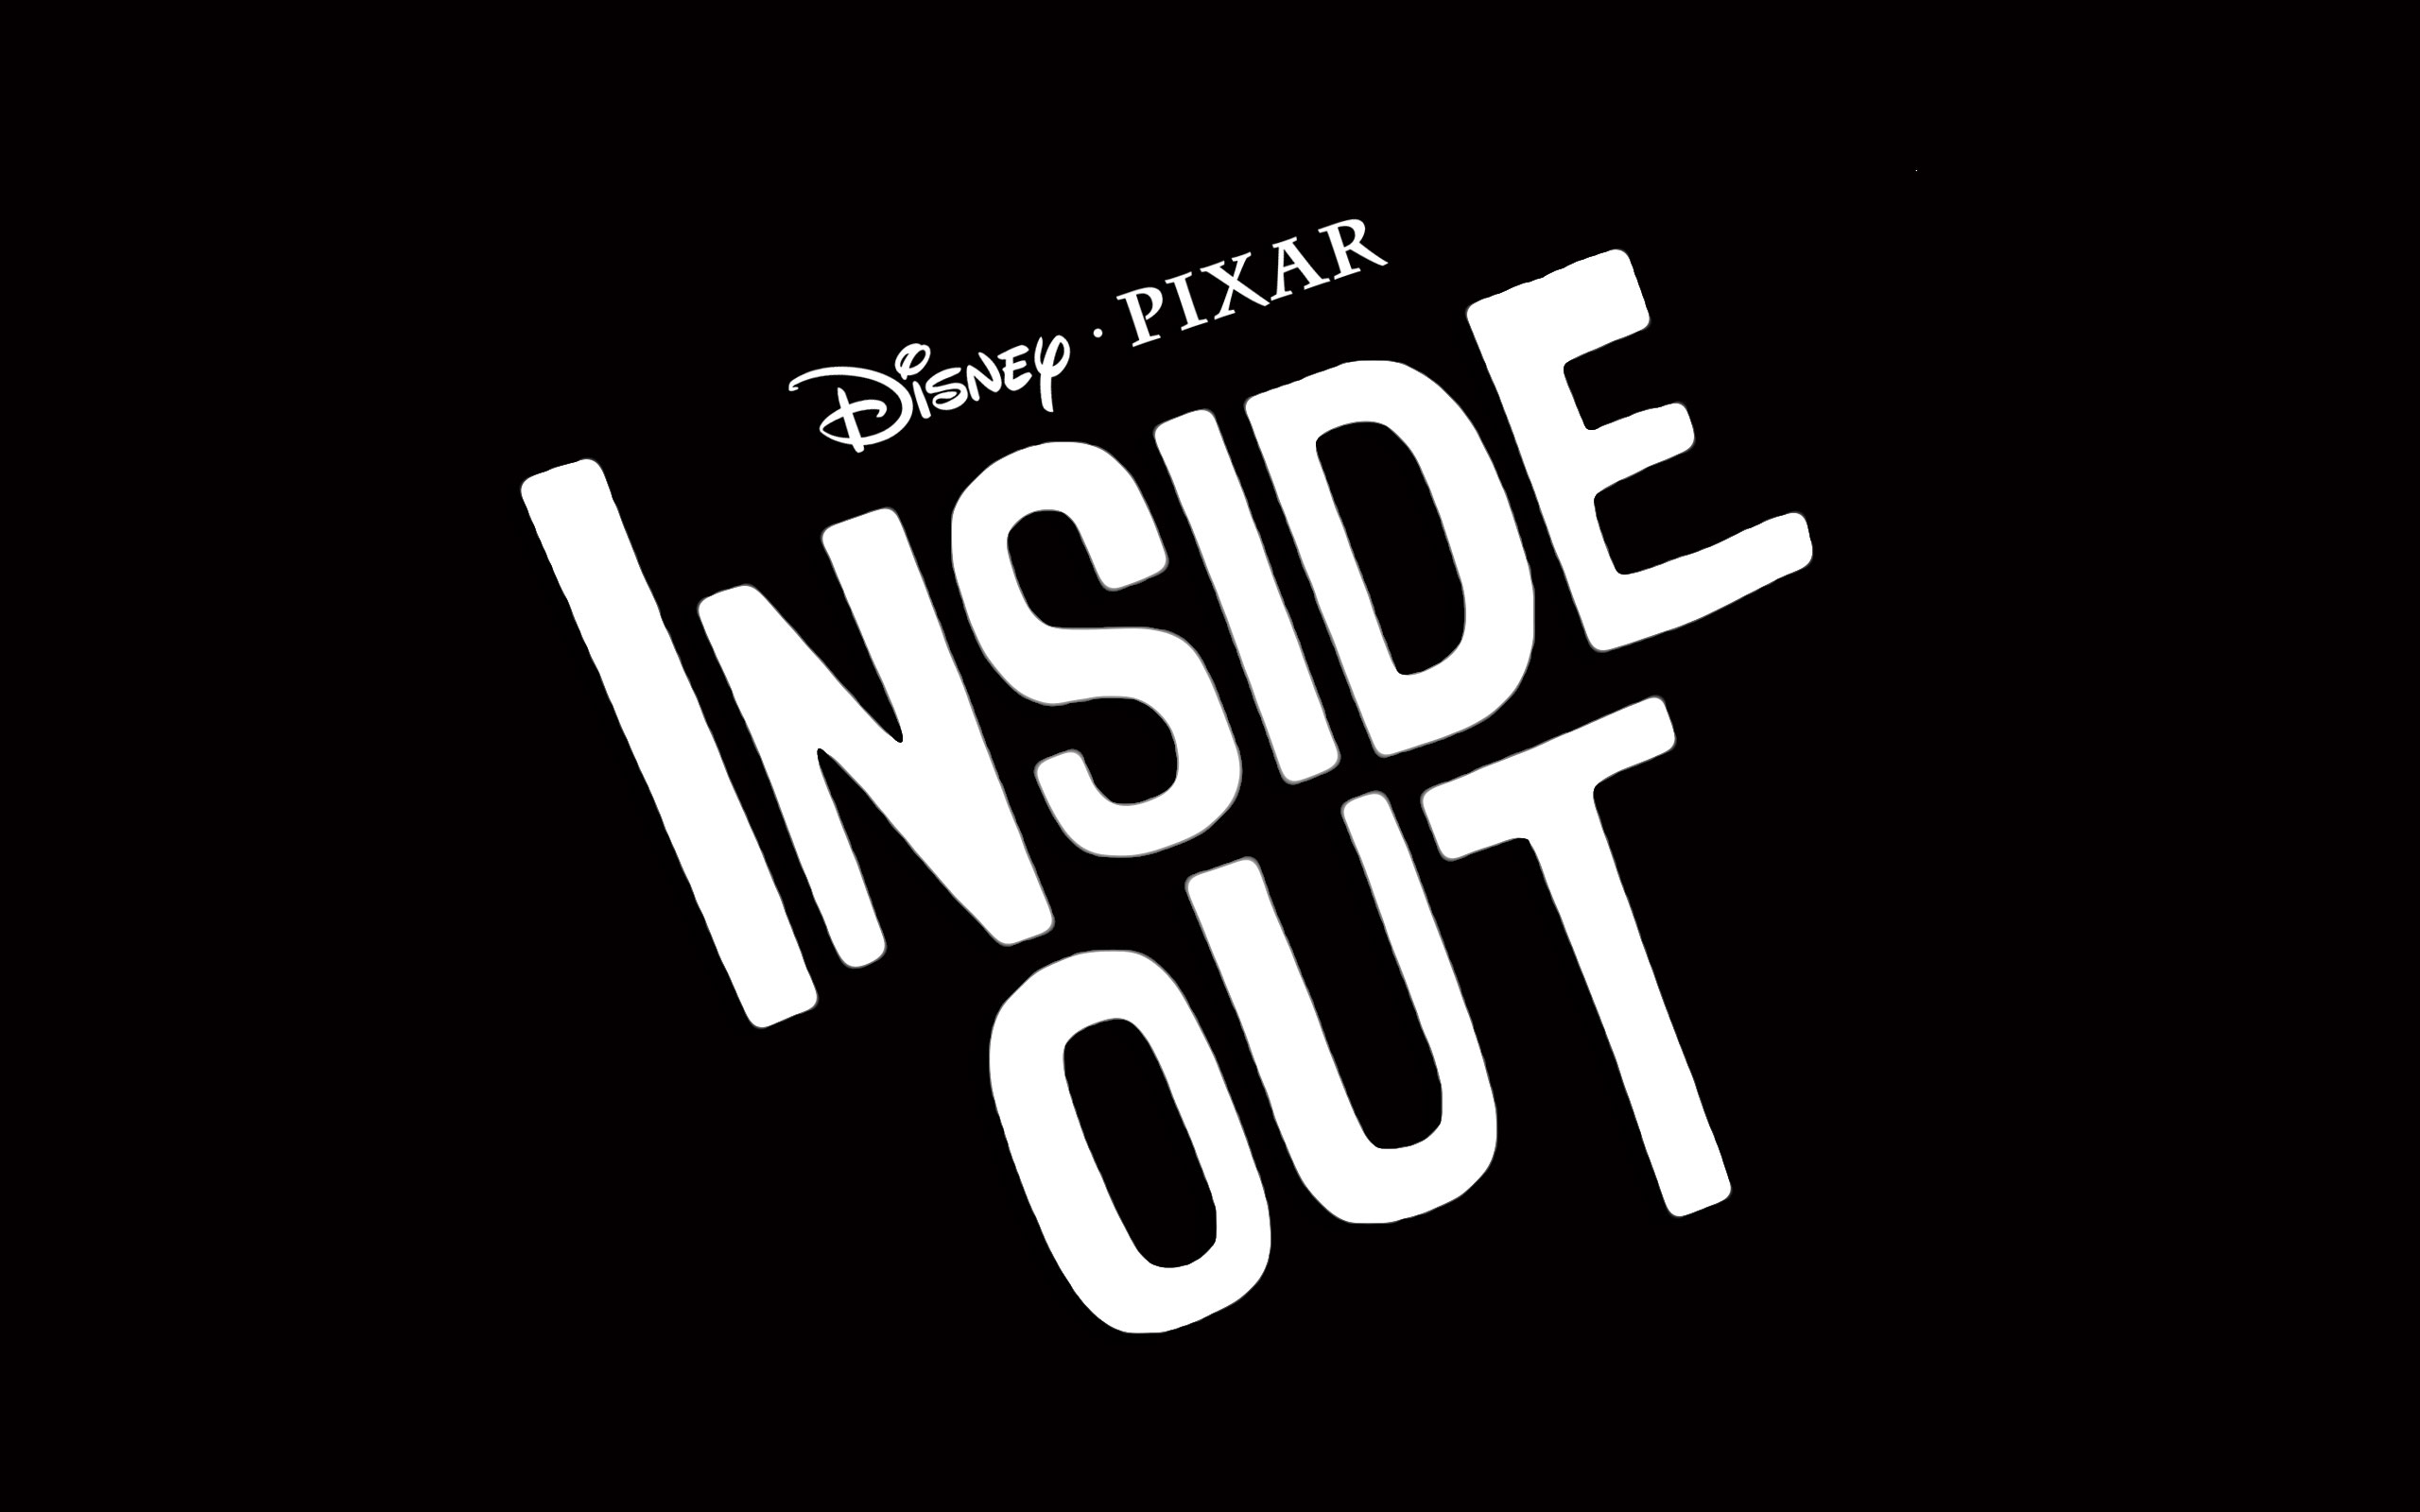 Disney Pixar Inside Out Logo   2560x1600   WHQD 1610 2560x1600